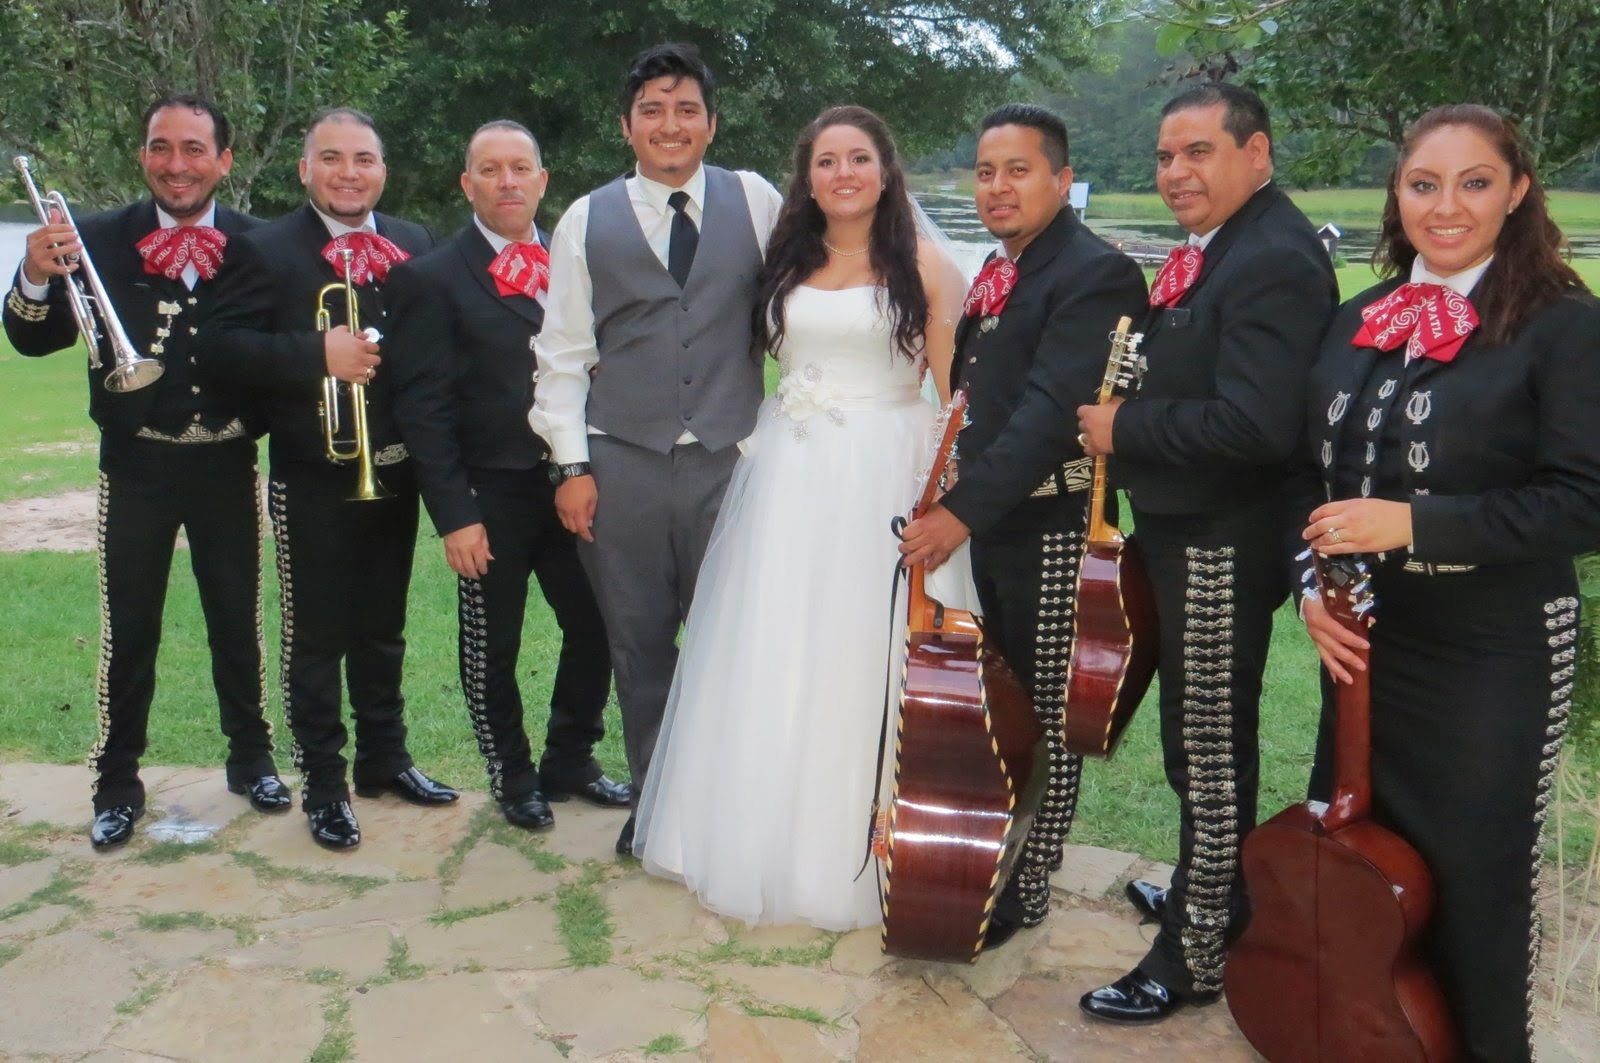 Miguel Did A Great Job Booking Mariachi En Houston For The Wedding This Weekend Click Link To See Them On Youtube They Music